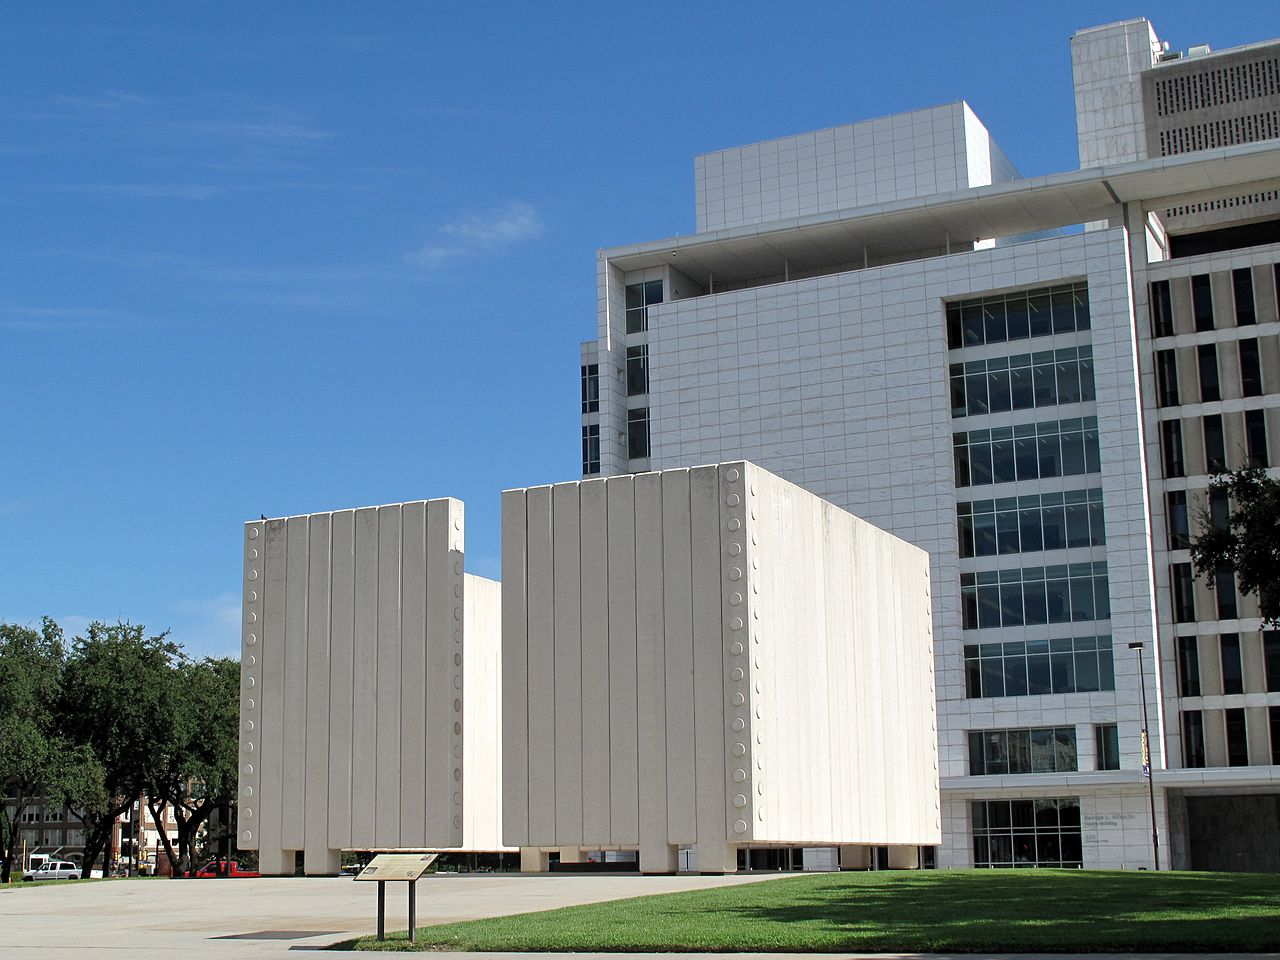 Top-Rated Place to Visit in Dallas City-John F. Kennedy Memorial